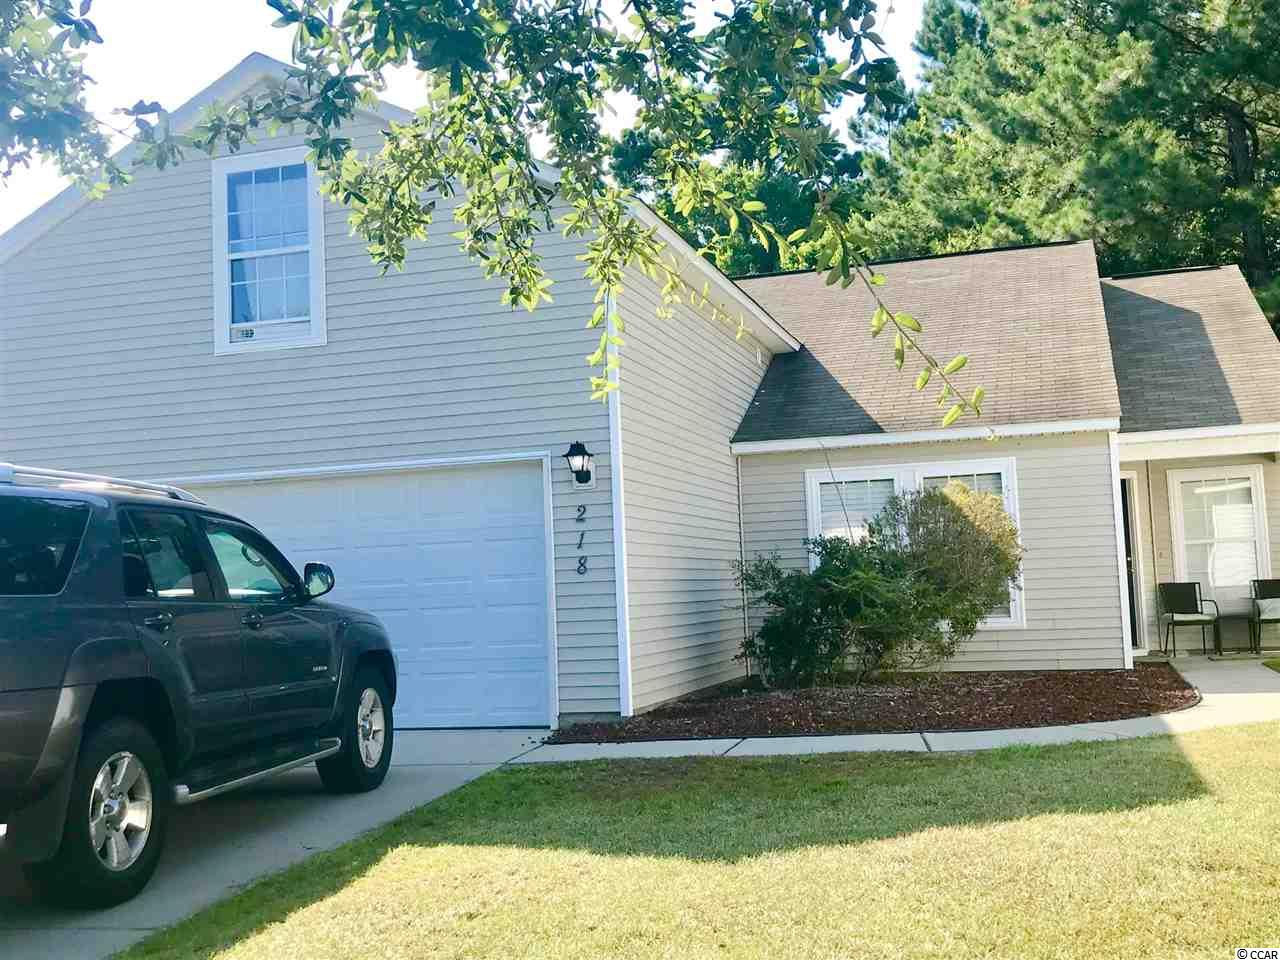 Investors don't miss this Amazing deal on this 4 Bedroom, 2 1/2 Bath home with great tenant in place located in the Bellegrove Community in Carolina Forest. You will be pleasantly surprised by the open floor plan! First floor master with a walk-in closet. Great central location in the highly desired Carolina Forest area and close to all the Grand Strand has to offer. Great schools, great championship golf courses, excellent restaurants, entertainment and shopping. Priced to sell!!